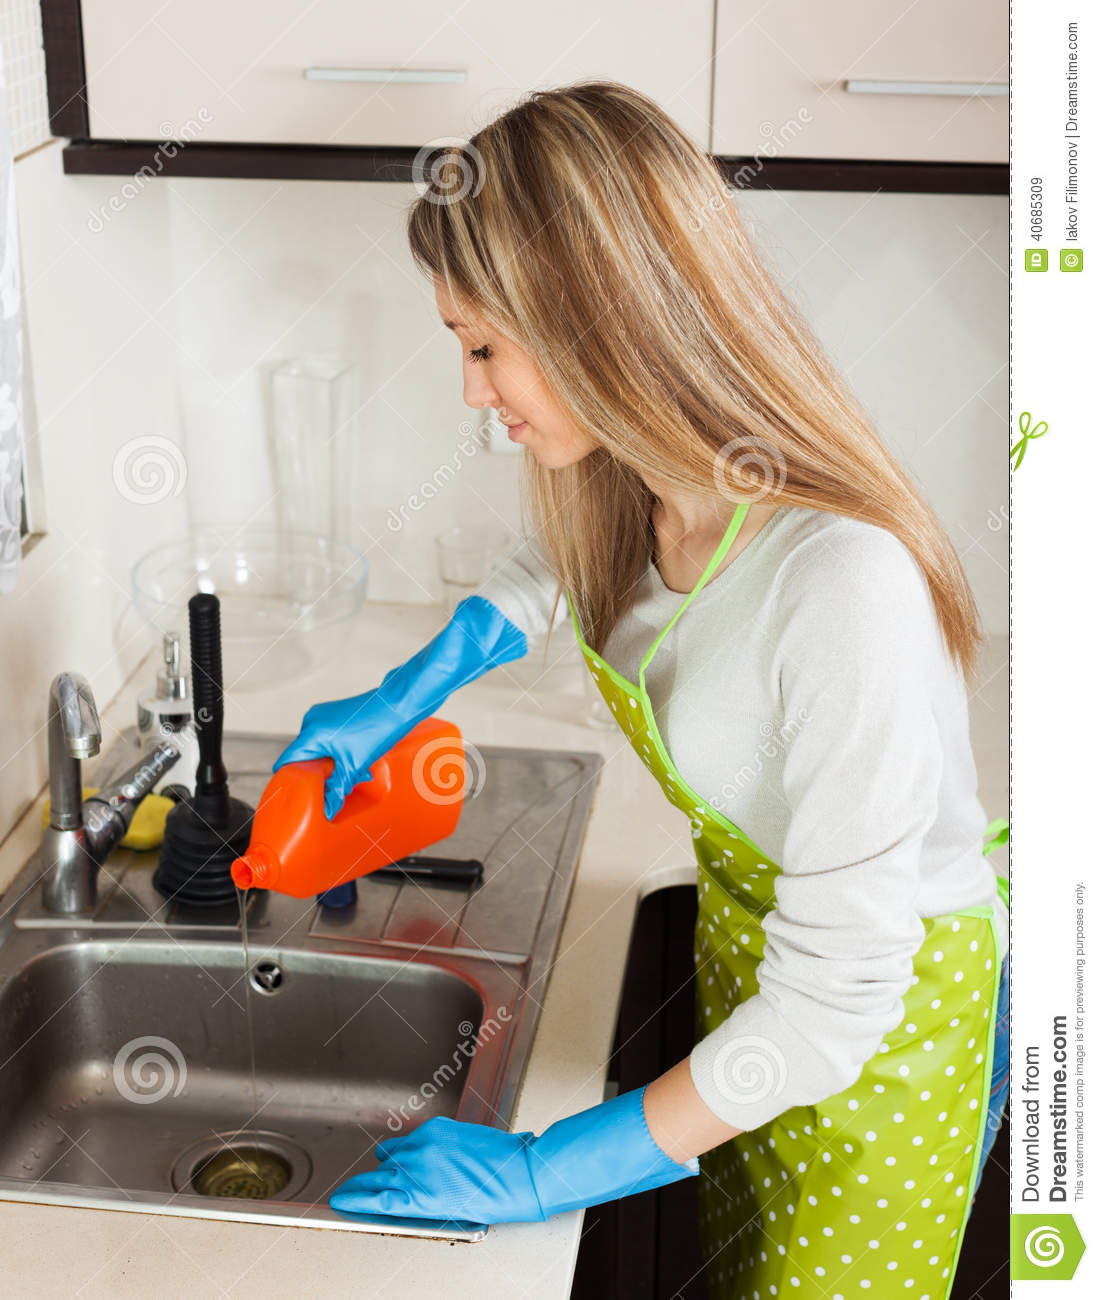 Blonde Woman Cleaning Pipe With Detergent Stock Photo   Image